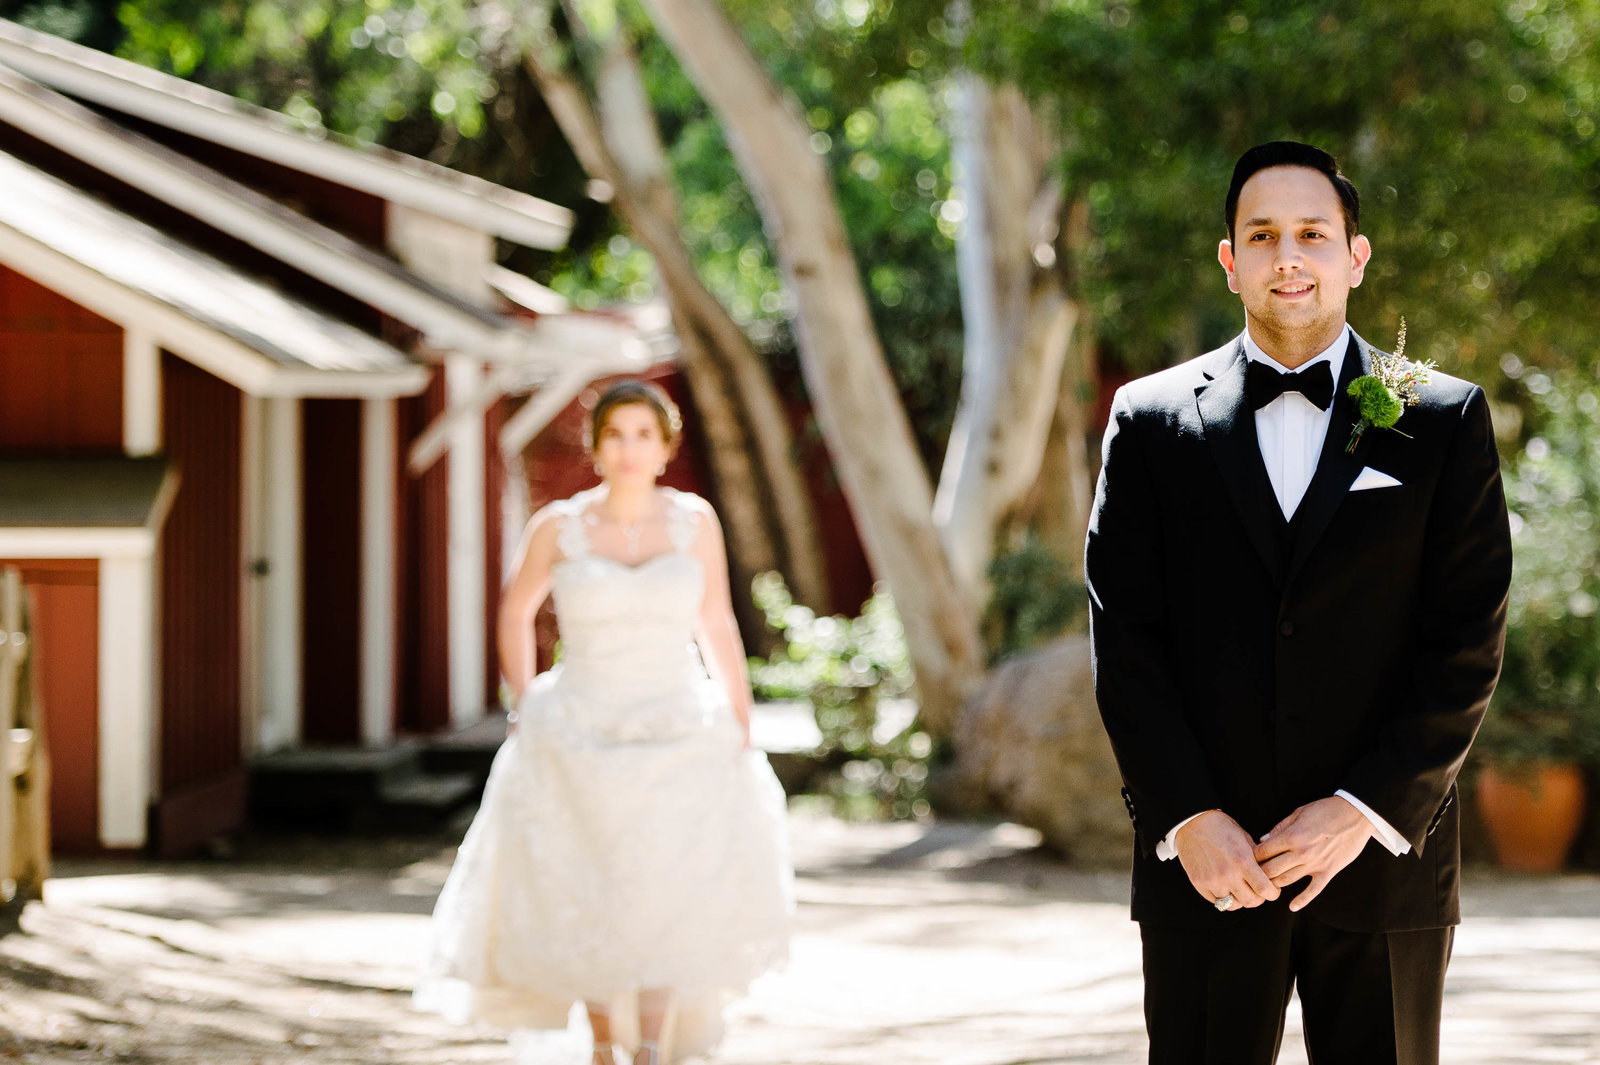 215-El-paso-wedding-photographer-MiAr_0254